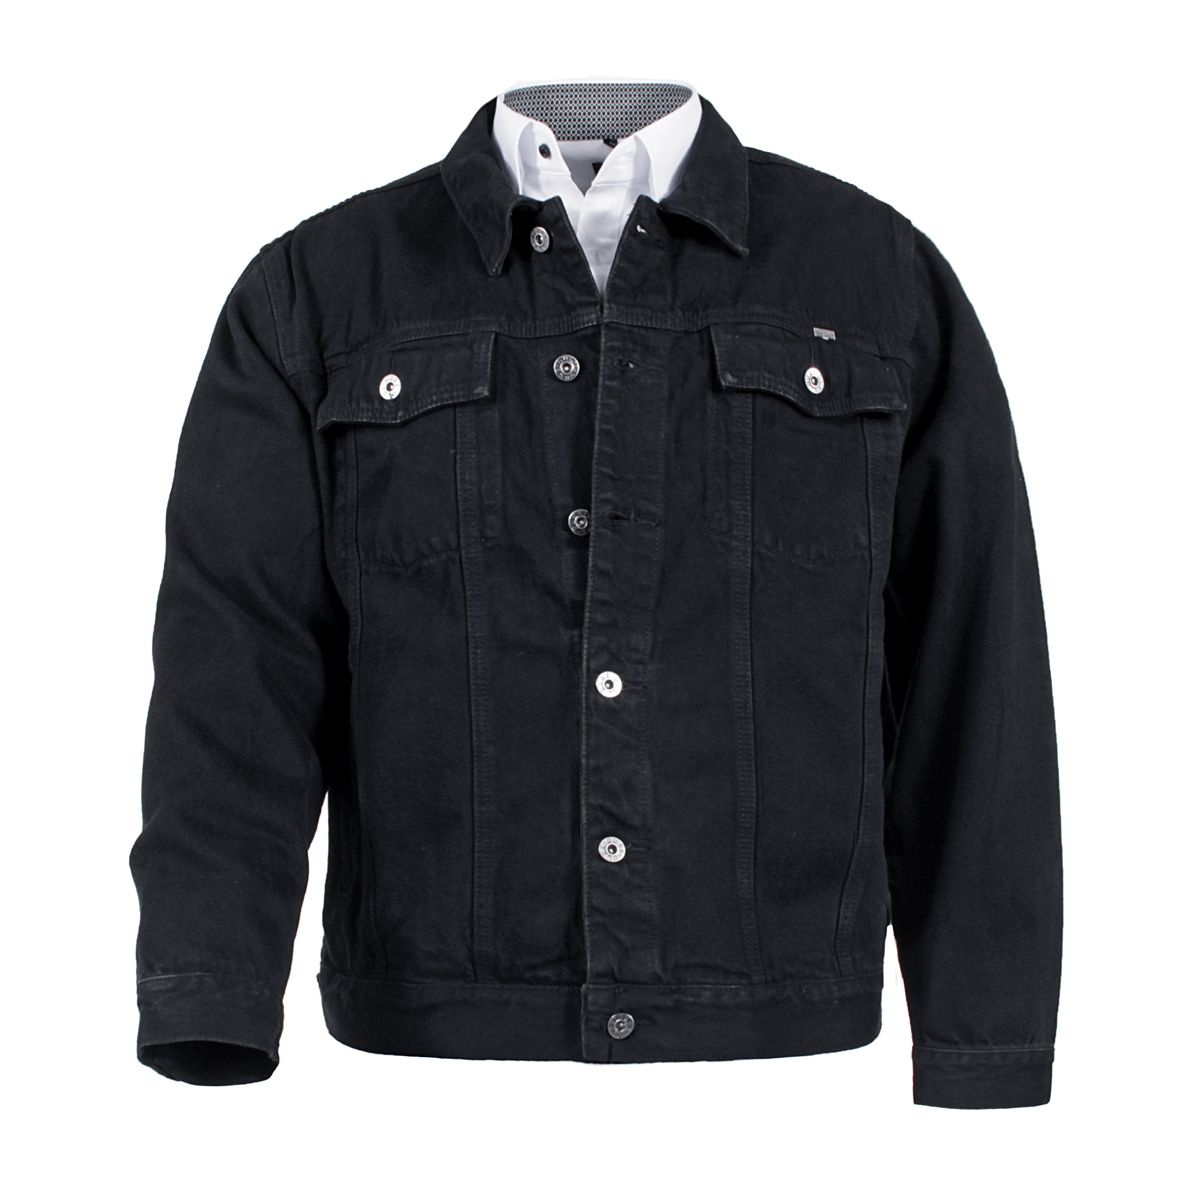 veste en jean noire trucker grande taille jusqu 39 au 6xl duke duke. Black Bedroom Furniture Sets. Home Design Ideas